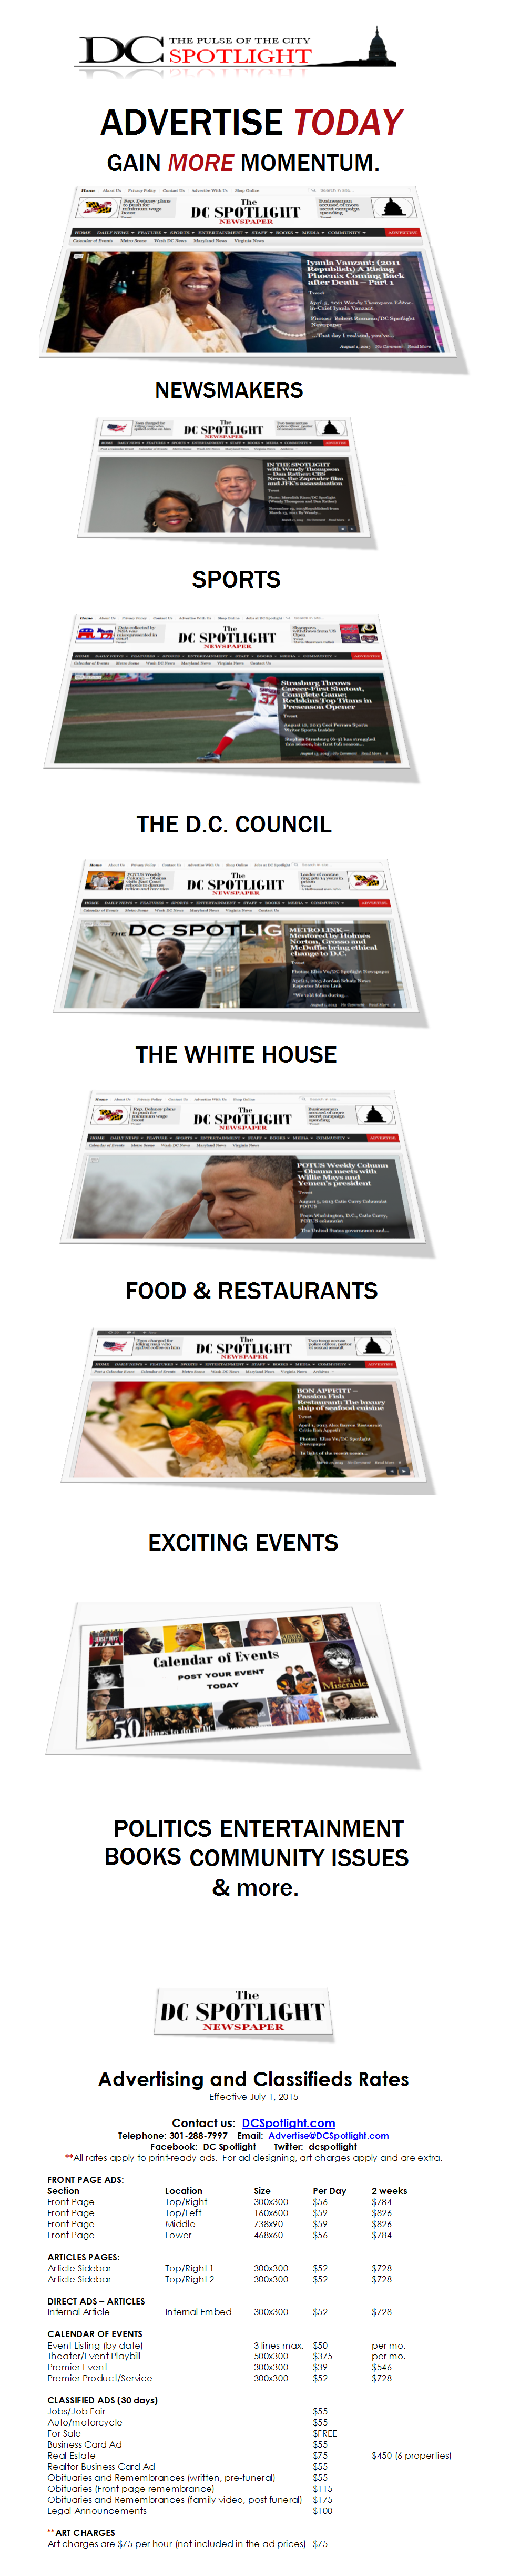 DC SPOTLIGHT - ADVERTISING - NEW RATES-COVERS - JULY 2015